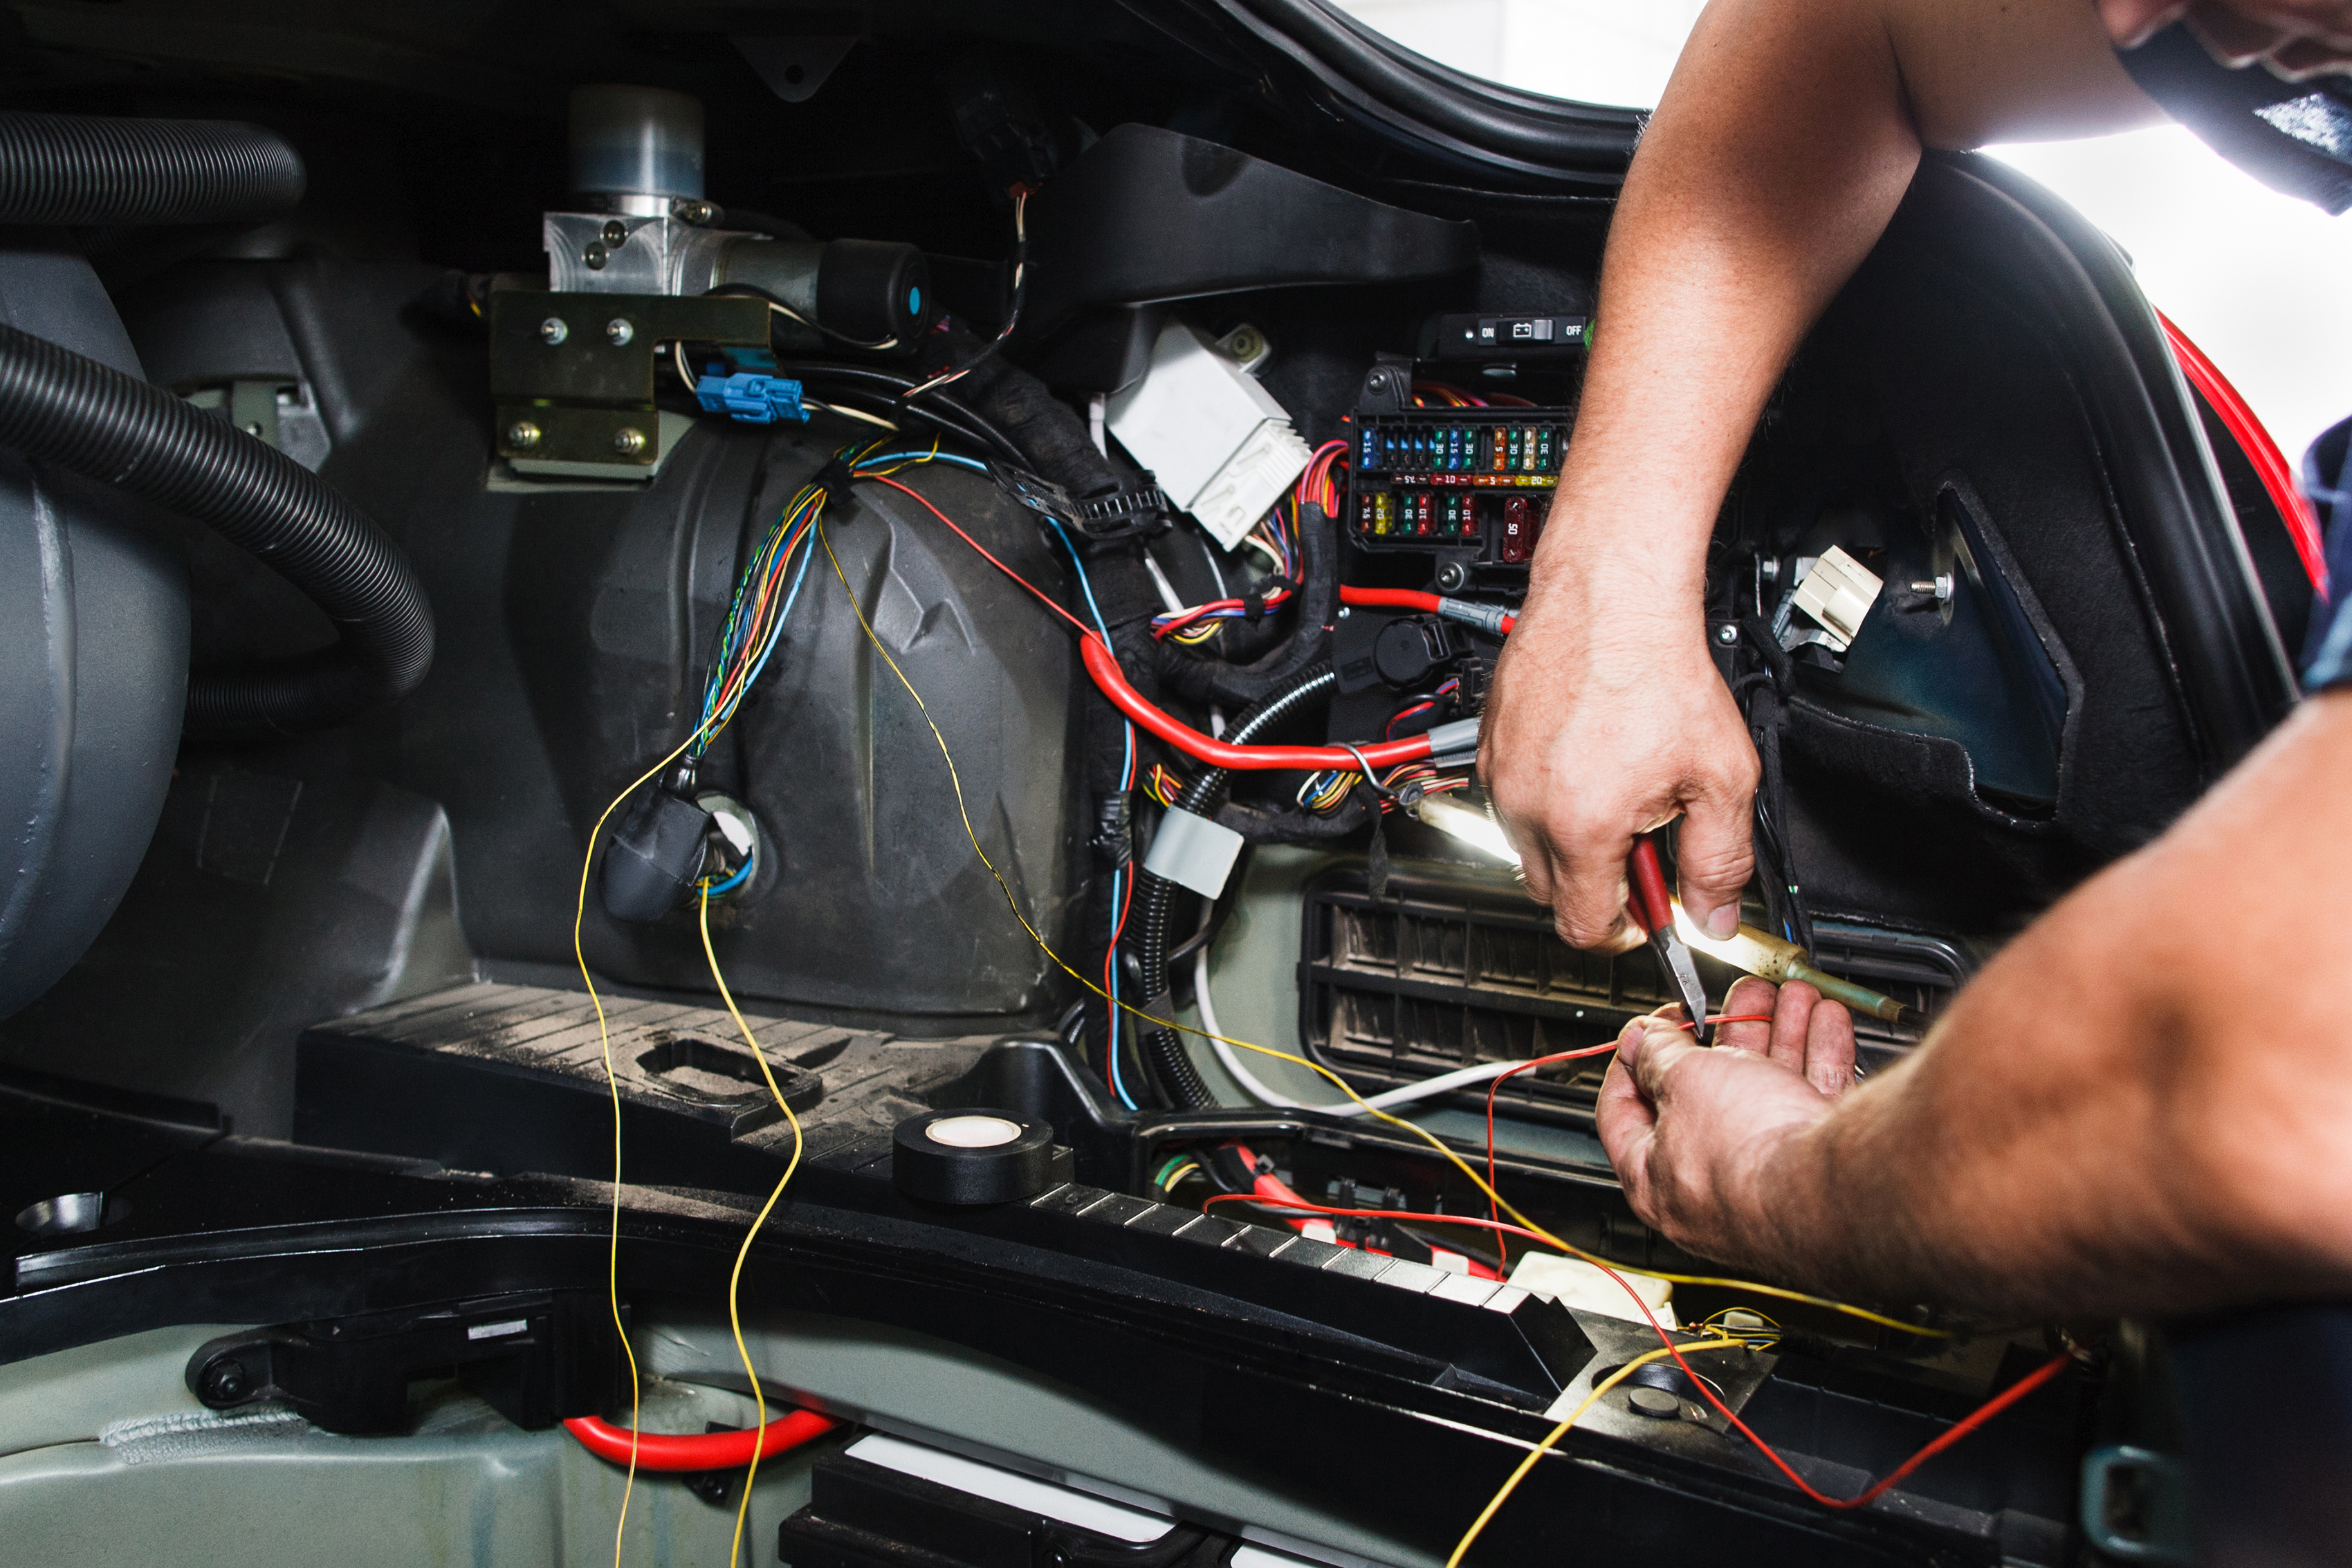 Class: Electrical Systems | Gearhead Workspace